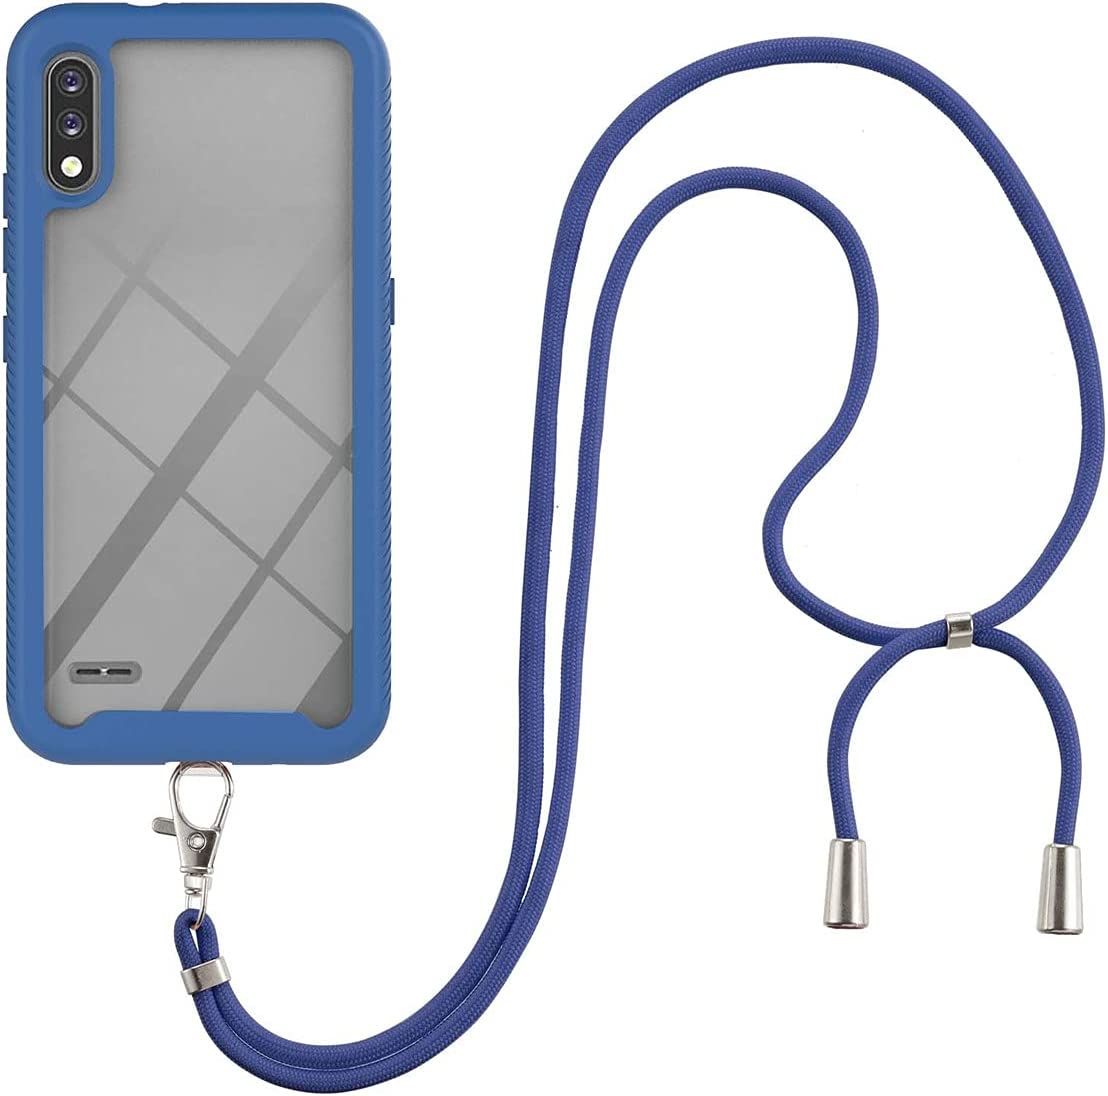 LG K22 Case, Gift_Source Slim Shockproof Crossbody Case 2 in 1 Soft Silicone Bumper and Clear Hard PC Back Cover Shell with Adjustable Lanyard Neck Strap for LG K22 (6.2